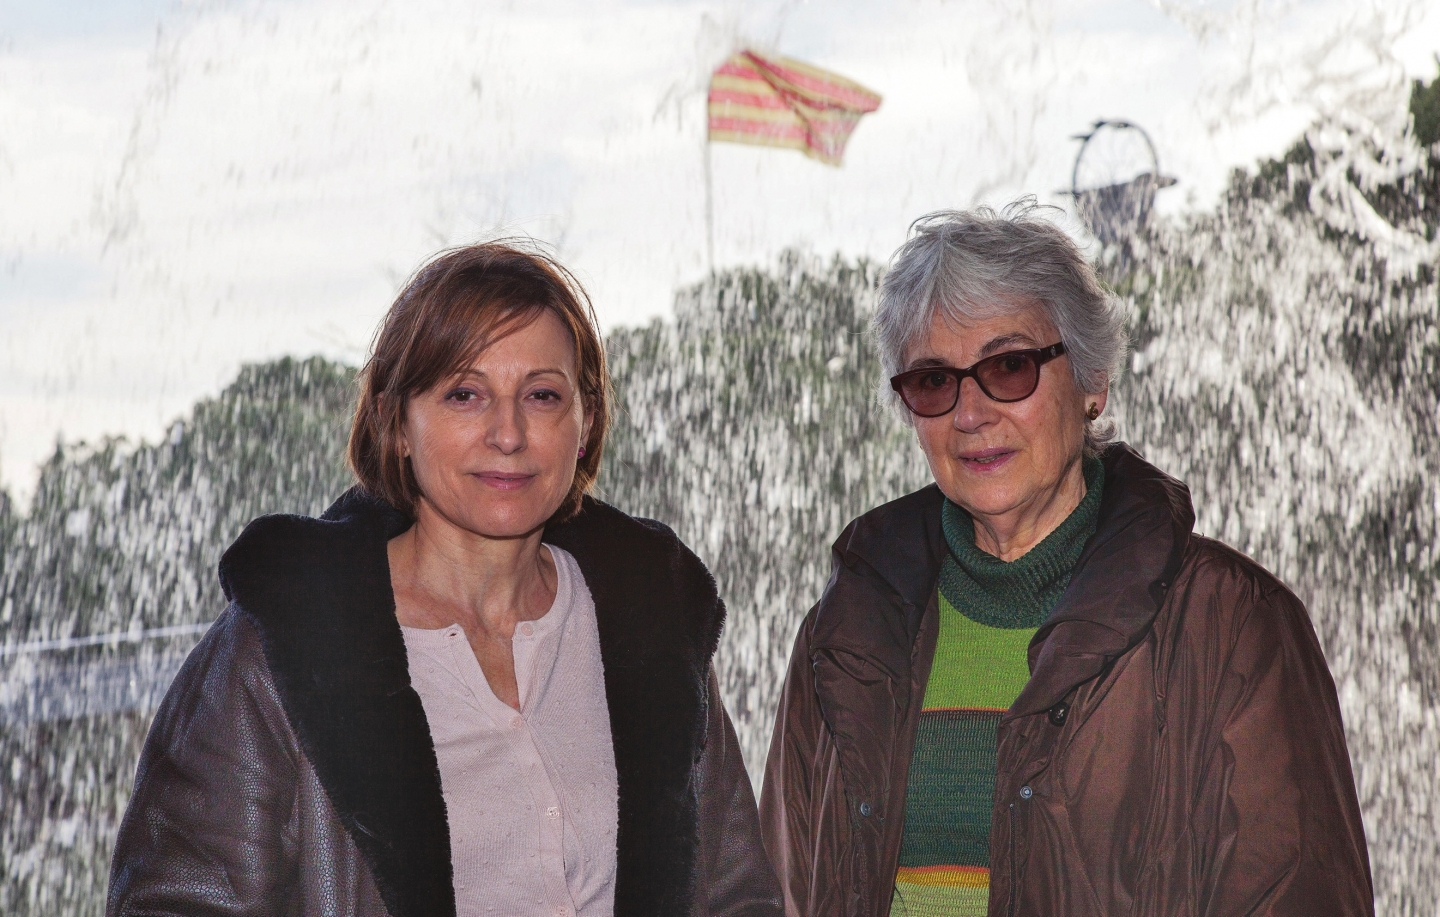 Muriel Casals  i Carme Forcadell